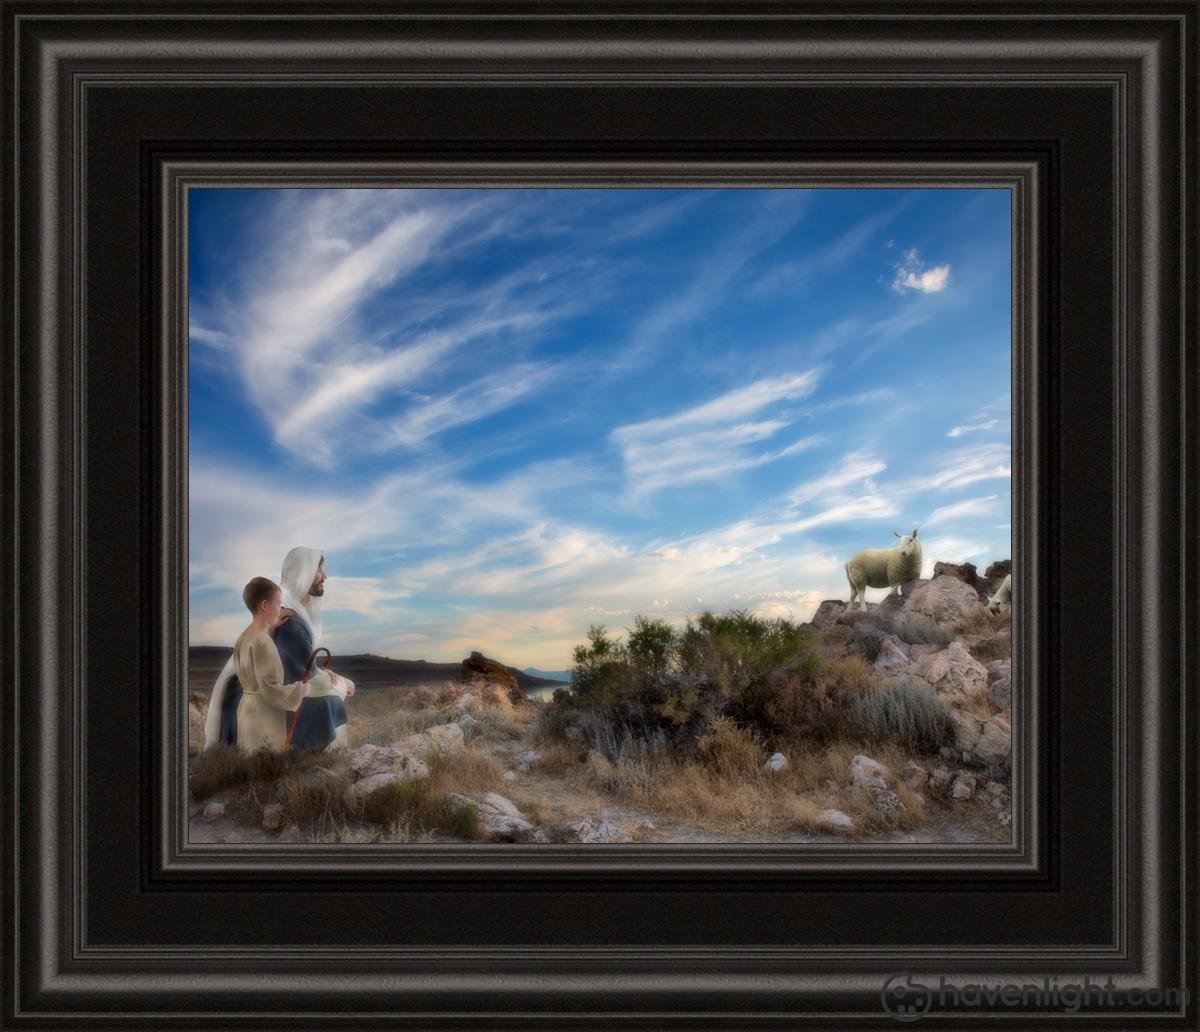 Training The Young Shepherd Open Edition Print / 10 X 8 Frame C 12 1/4 14 Art